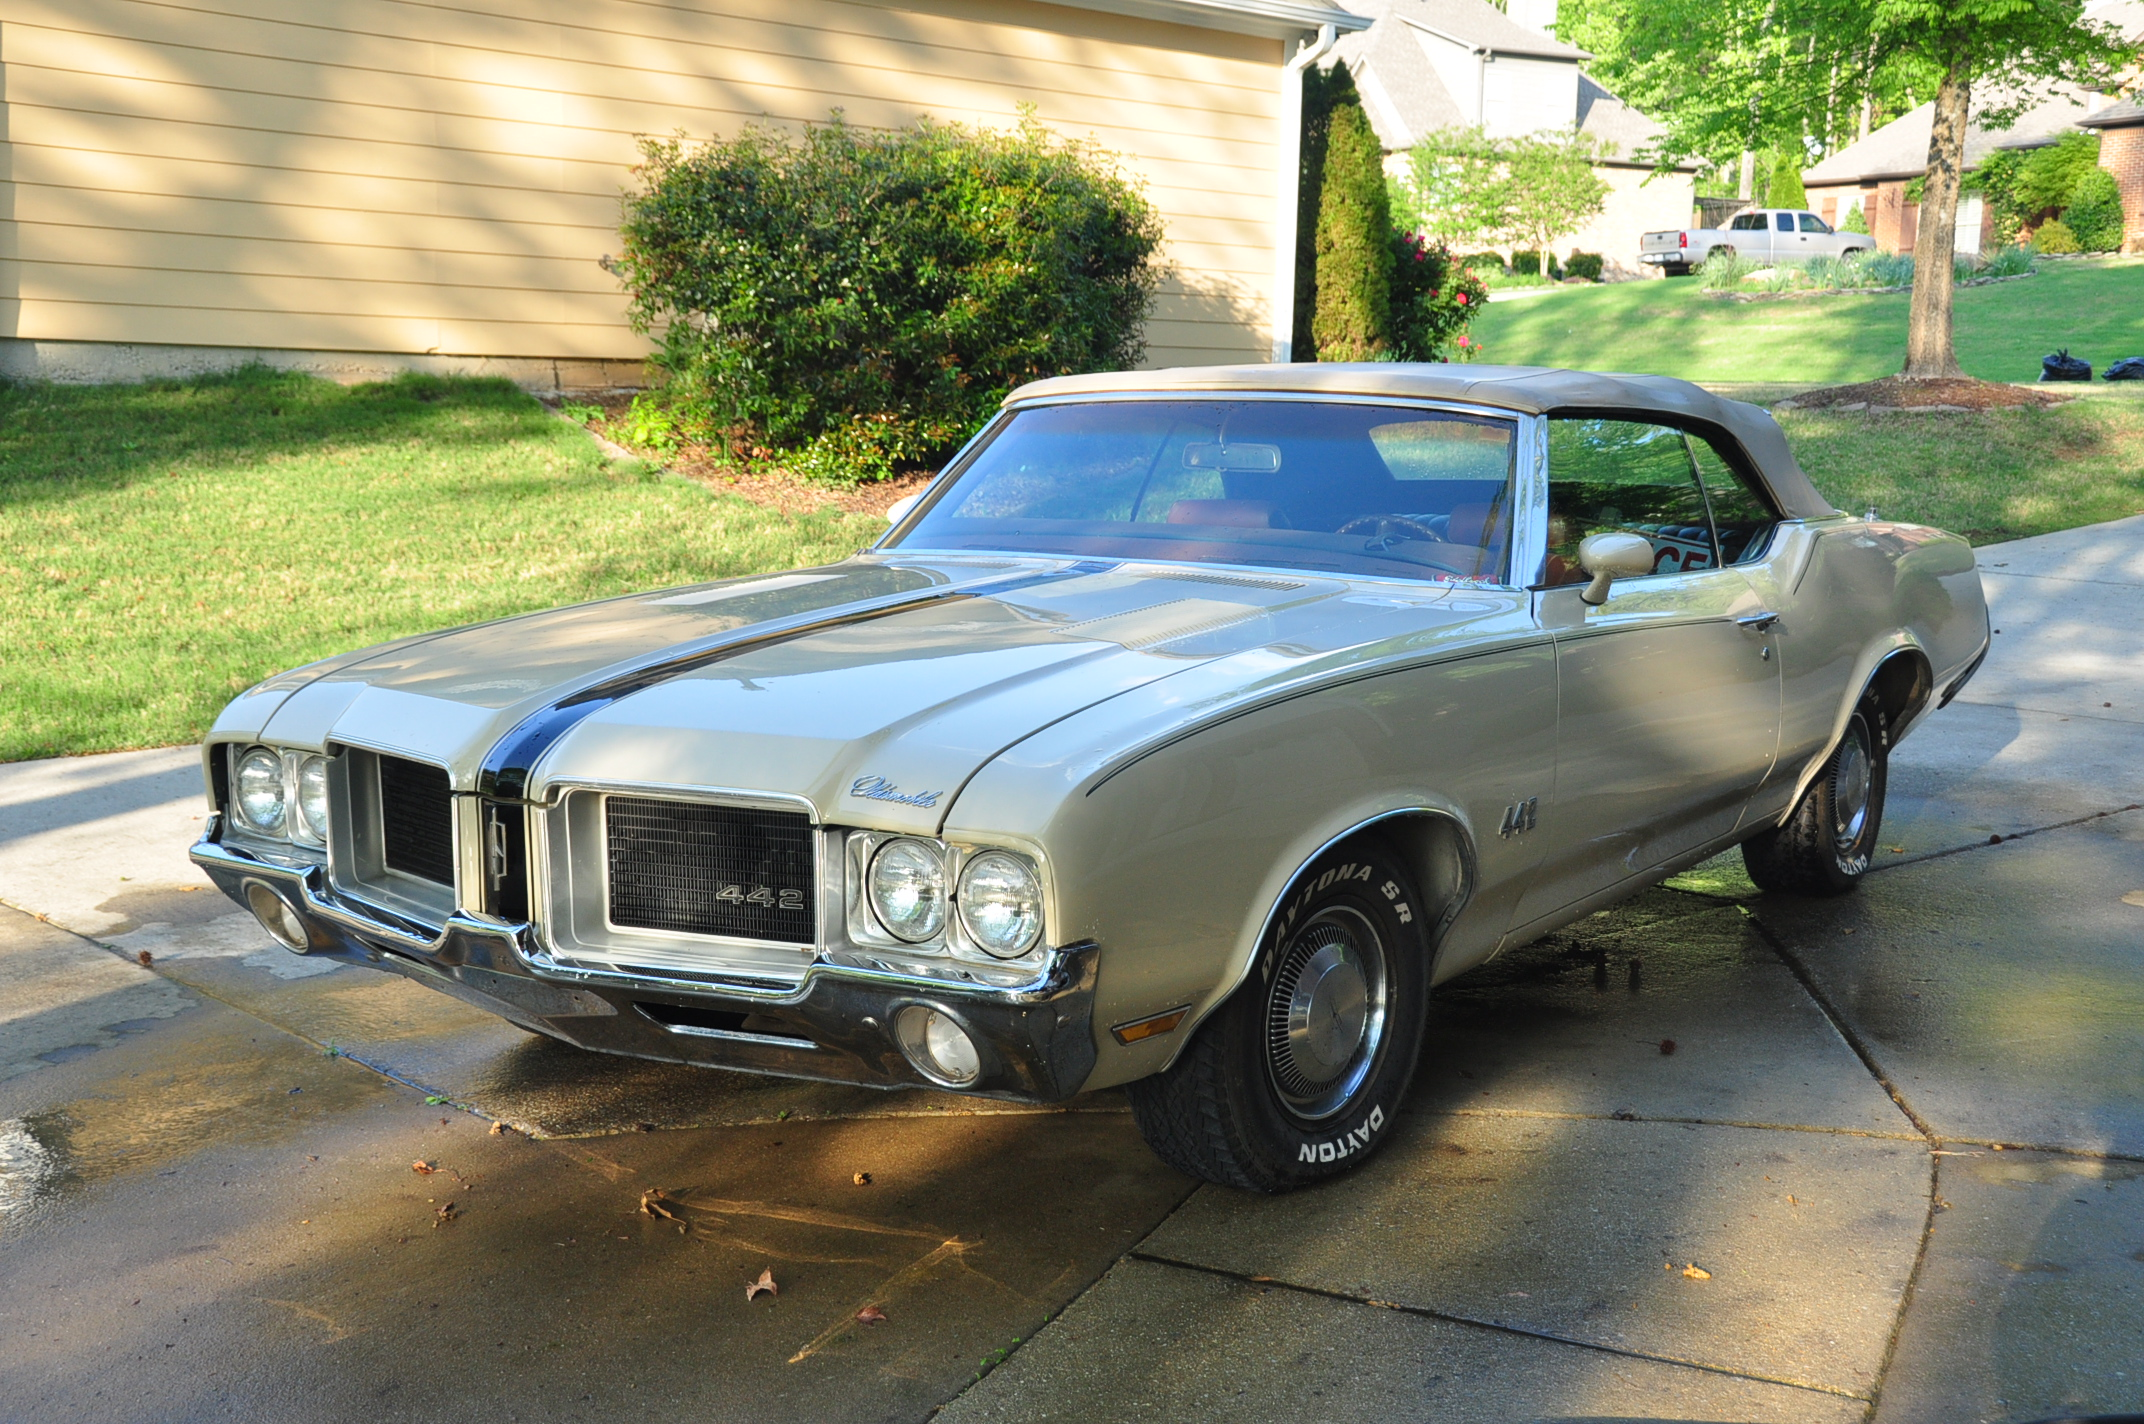 David Black's Oldsmobile 442